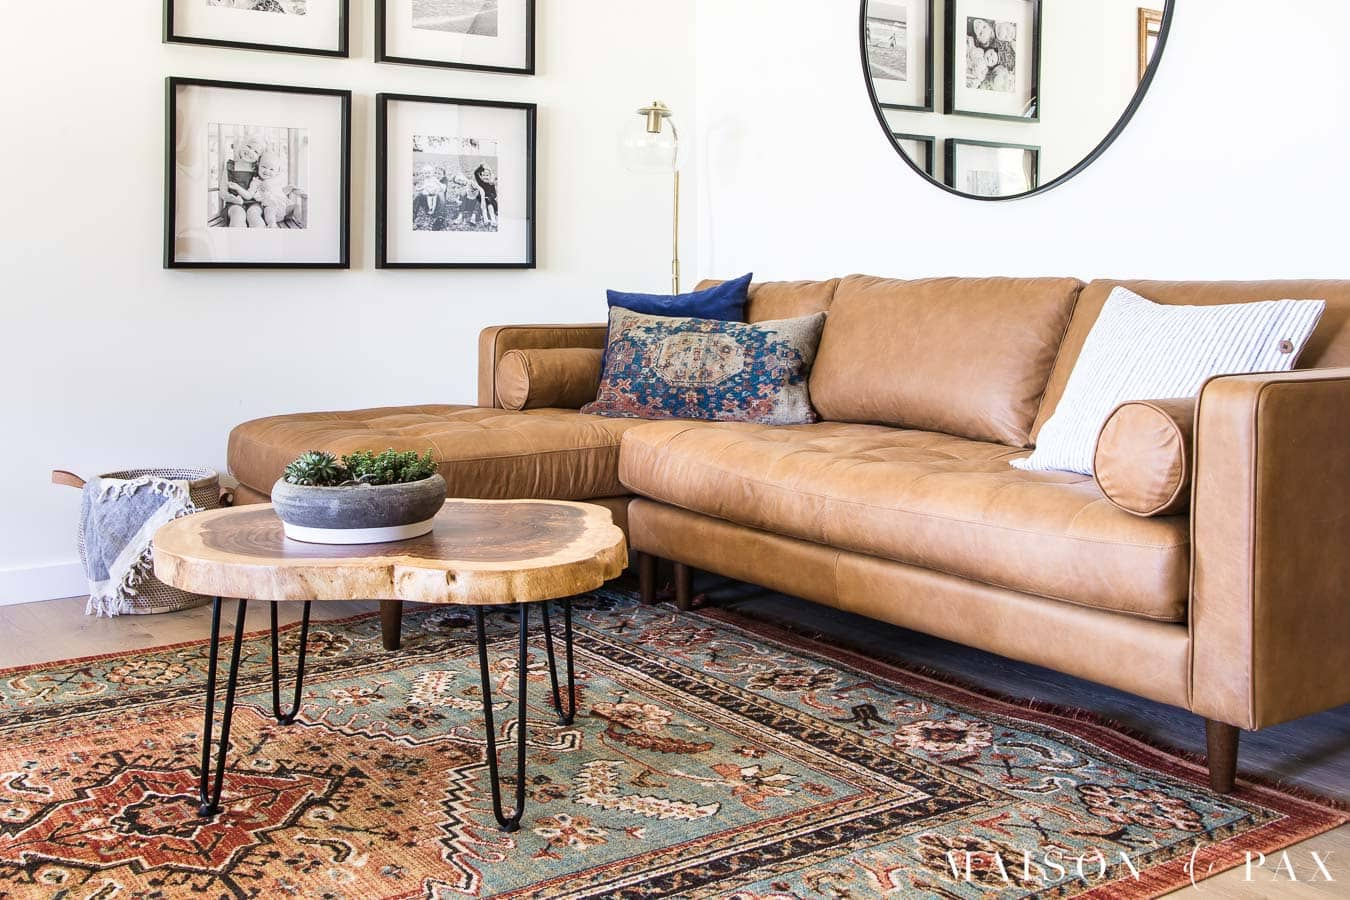 tan leather sofa with log slice coffee table with black metal hairpin legs | Maison de Pax